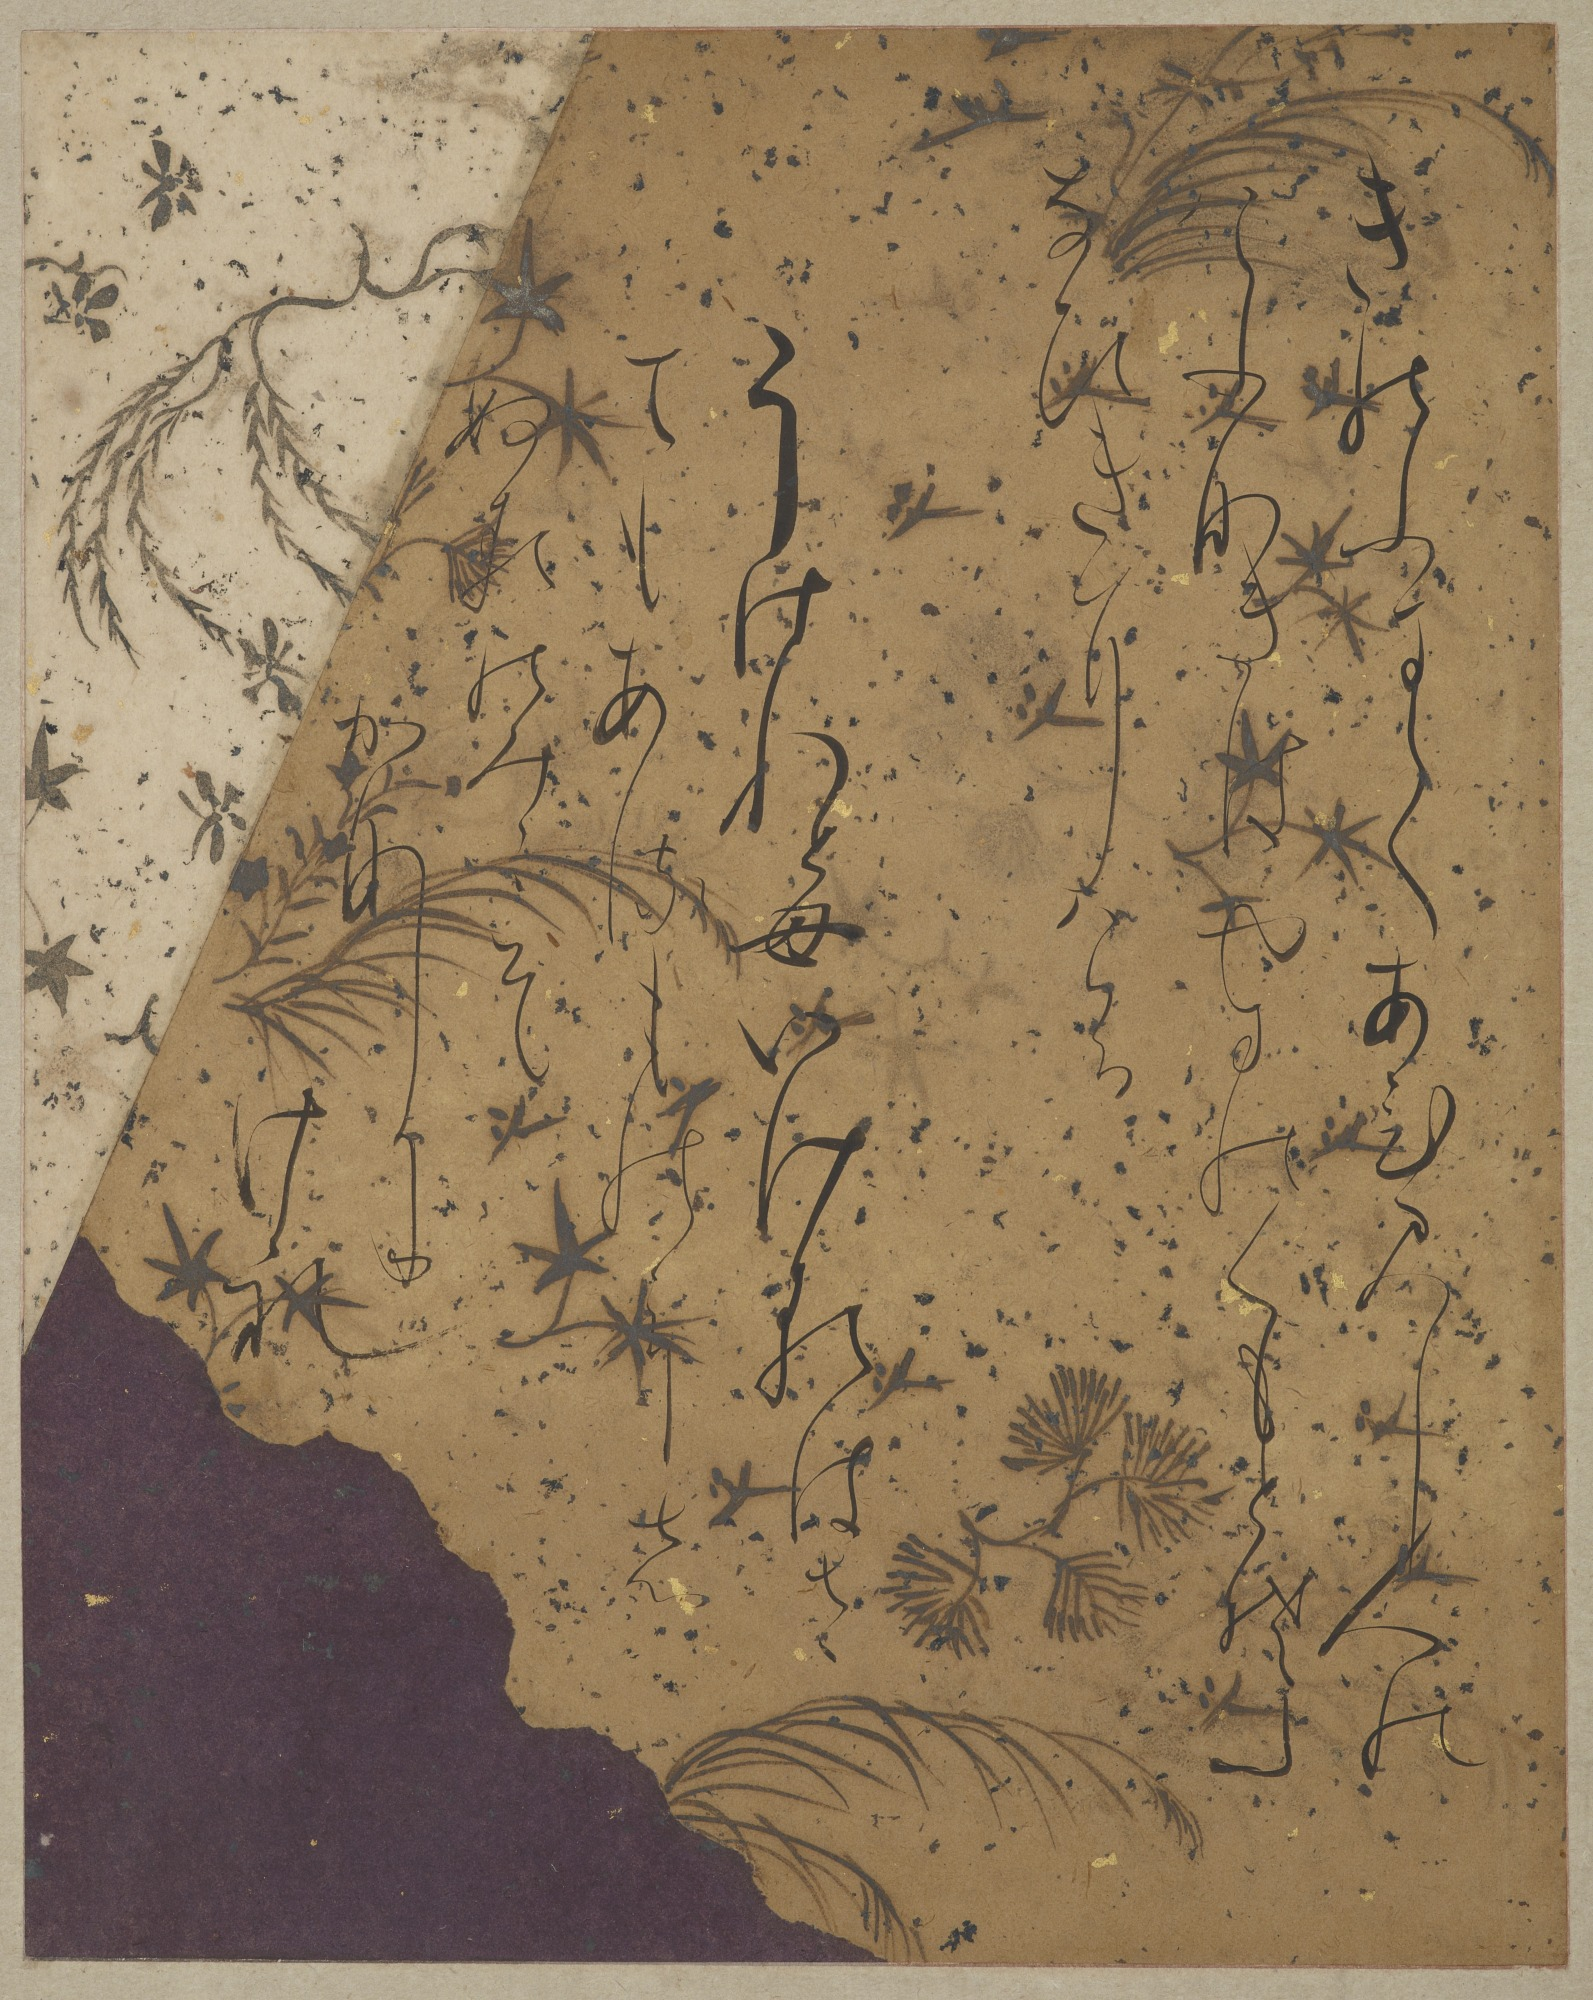 Page from the Ishiyama-gire (dispersed volumes of the Anthology of the Thirty-Six Poets) Poet: Ki no Tsurayuki